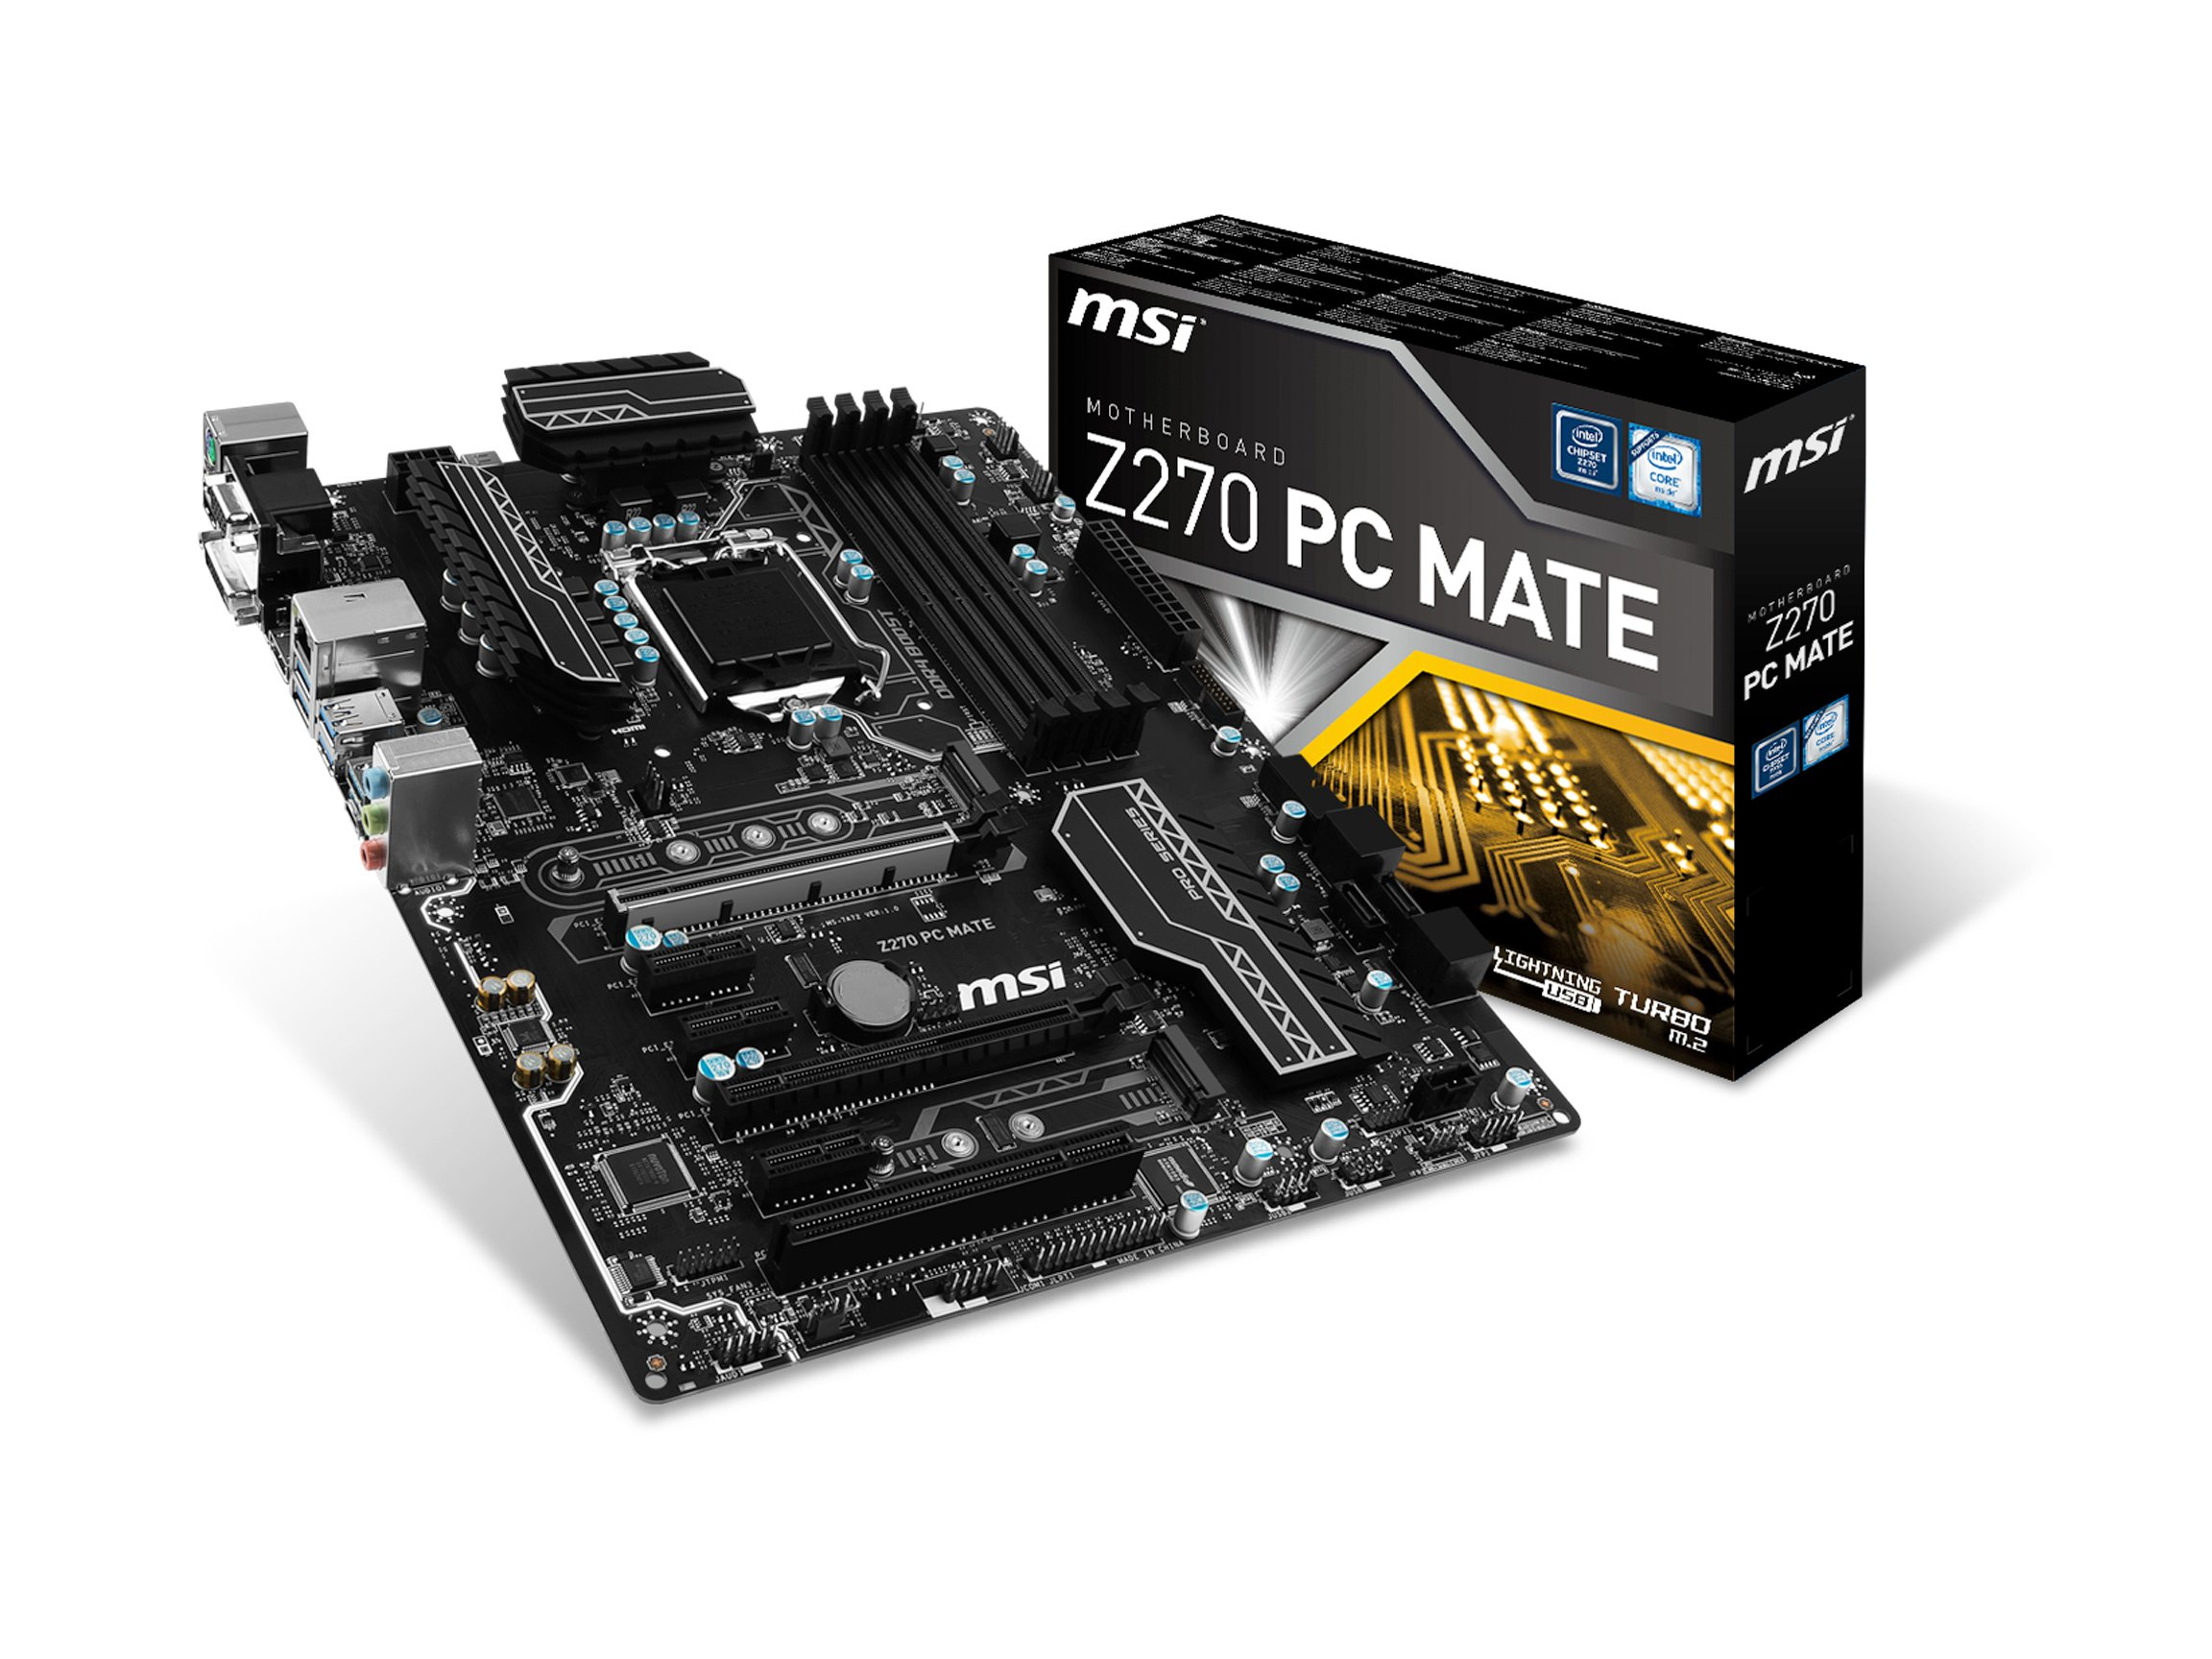 MSI Pro Series Intel Z270 DDR4 HDMI USB 3 CrossFire ATX Motherboard (Z270 PC MATE)